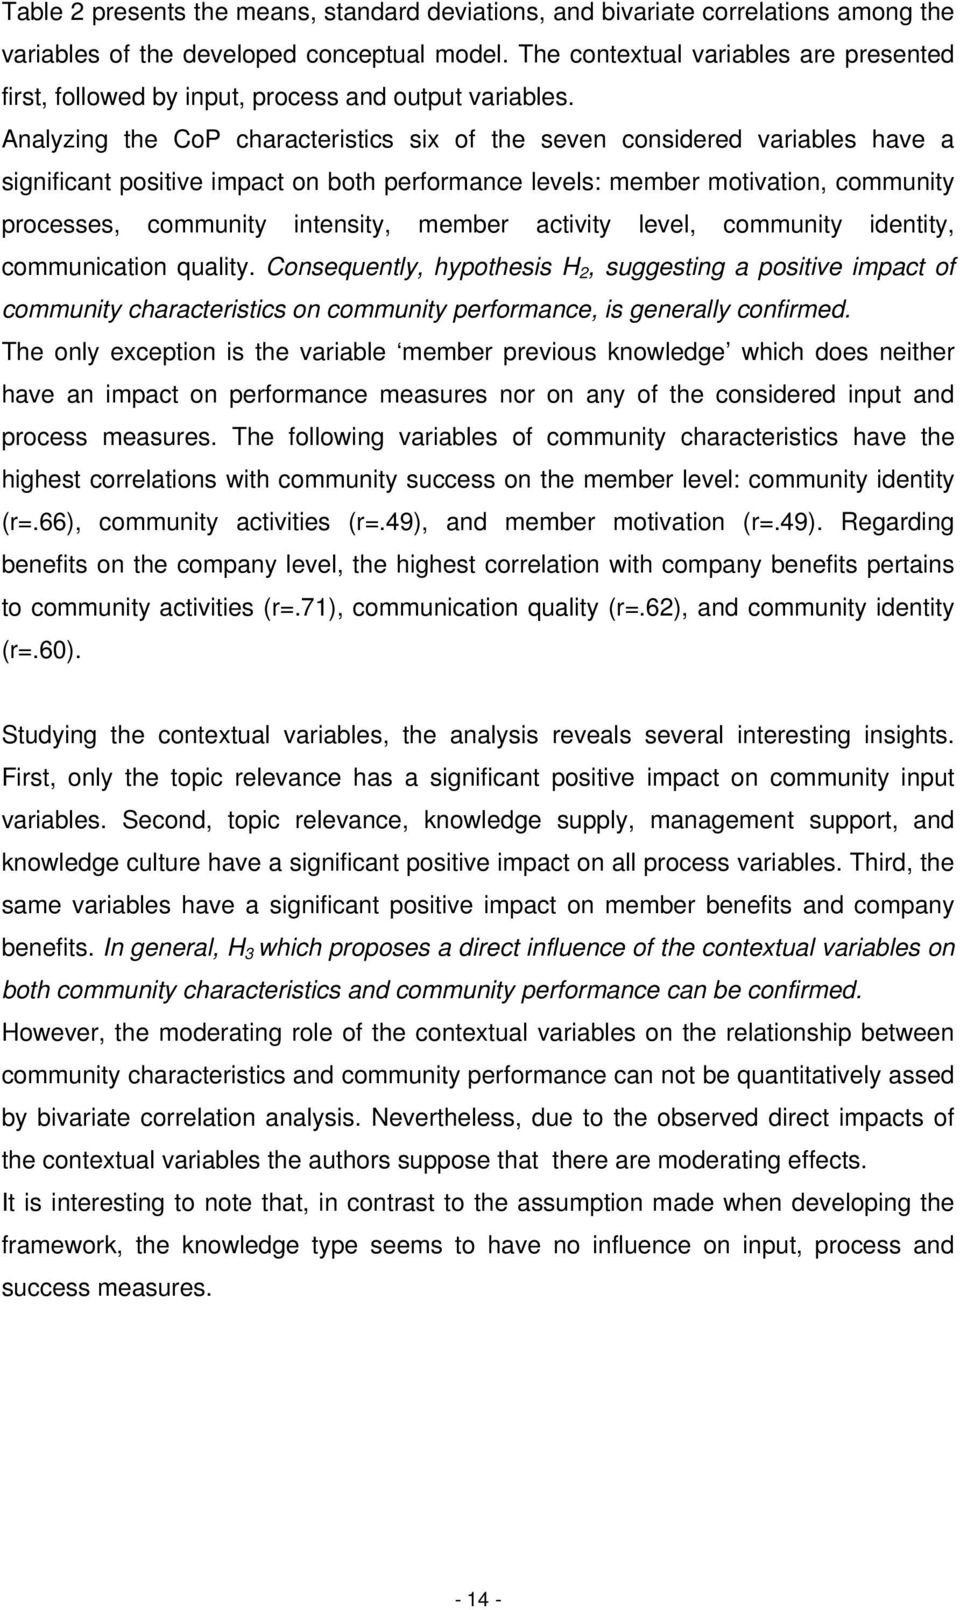 Analyzing the CoP characteristics six of the seven considered variables have a significant positive impact on both performance levels: member motivation, community processes, community intensity,